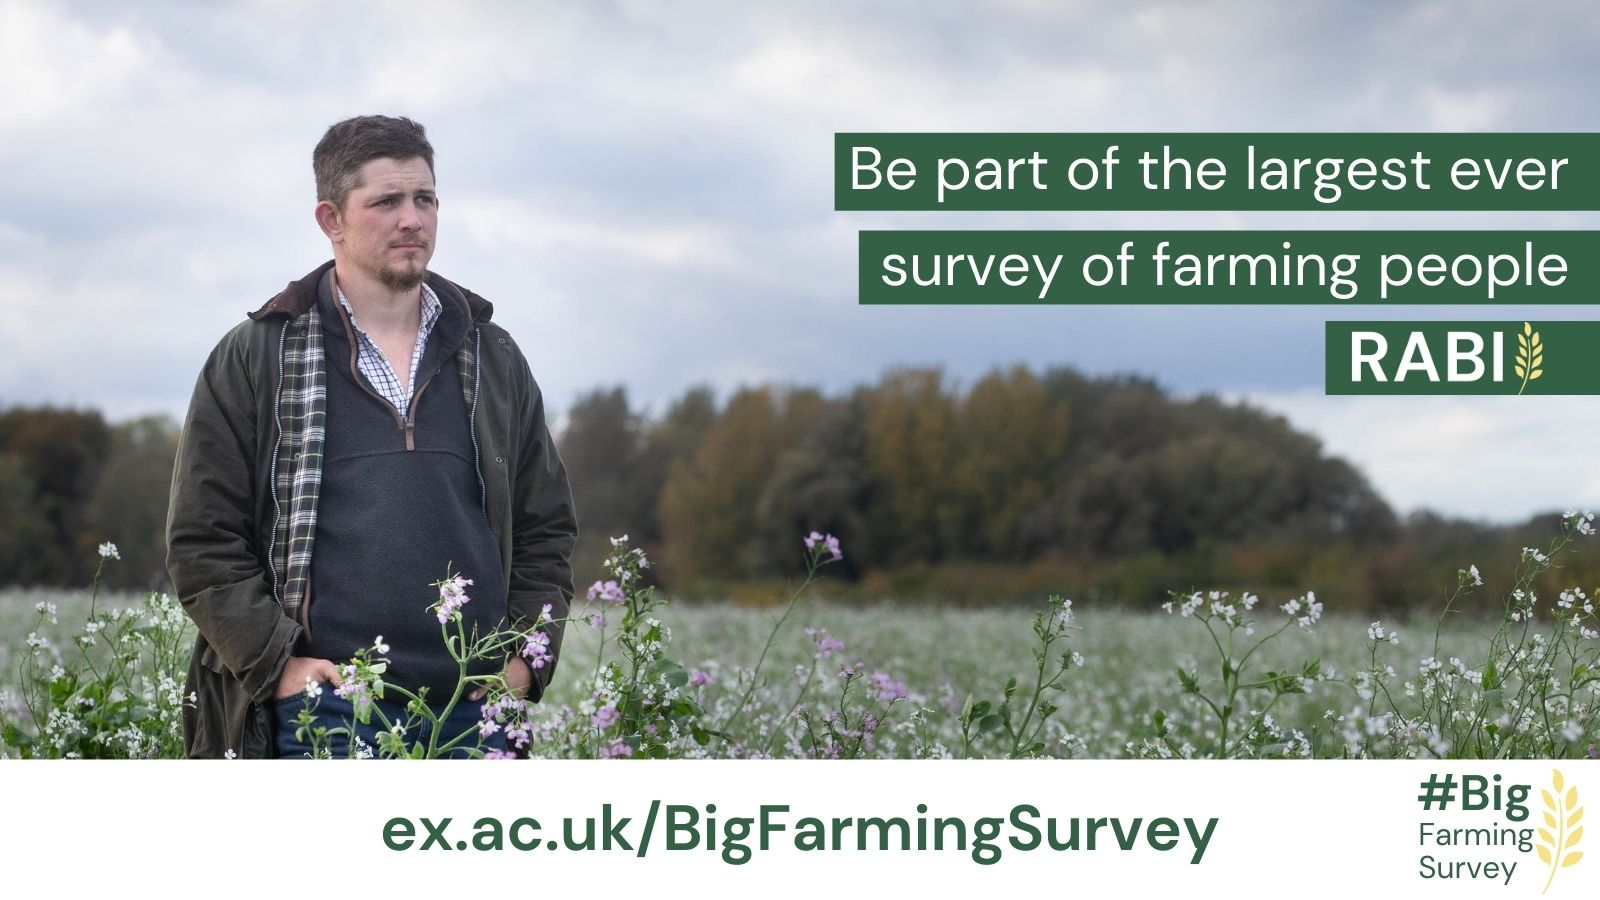 Take 15 minutes to complete the Big Farming Survey